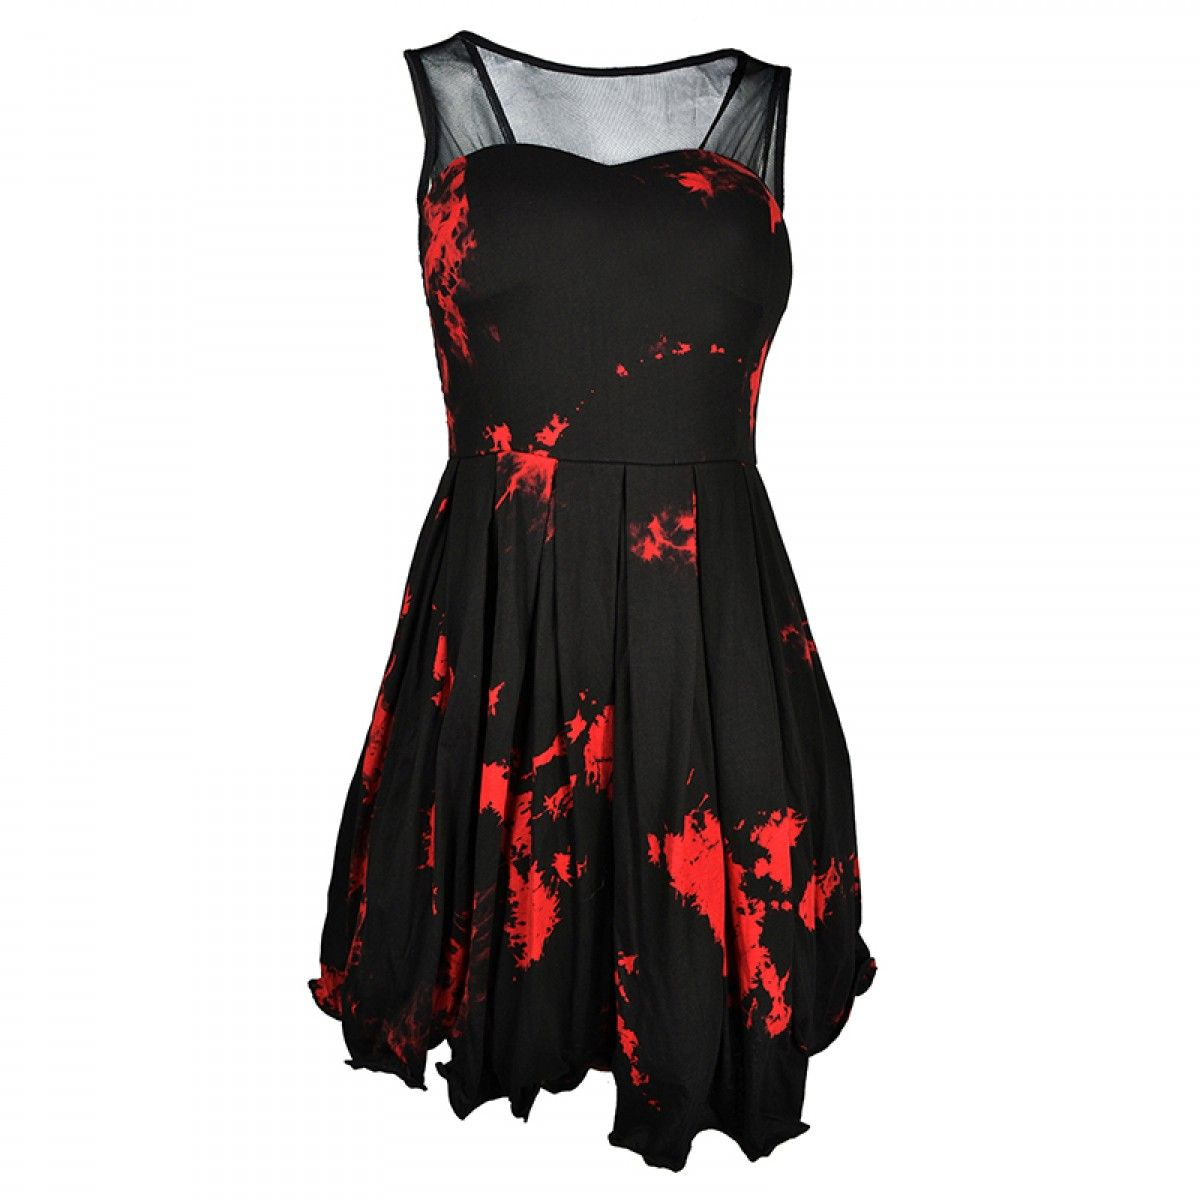 Red and Black Dress _Black Dresses_dressesss